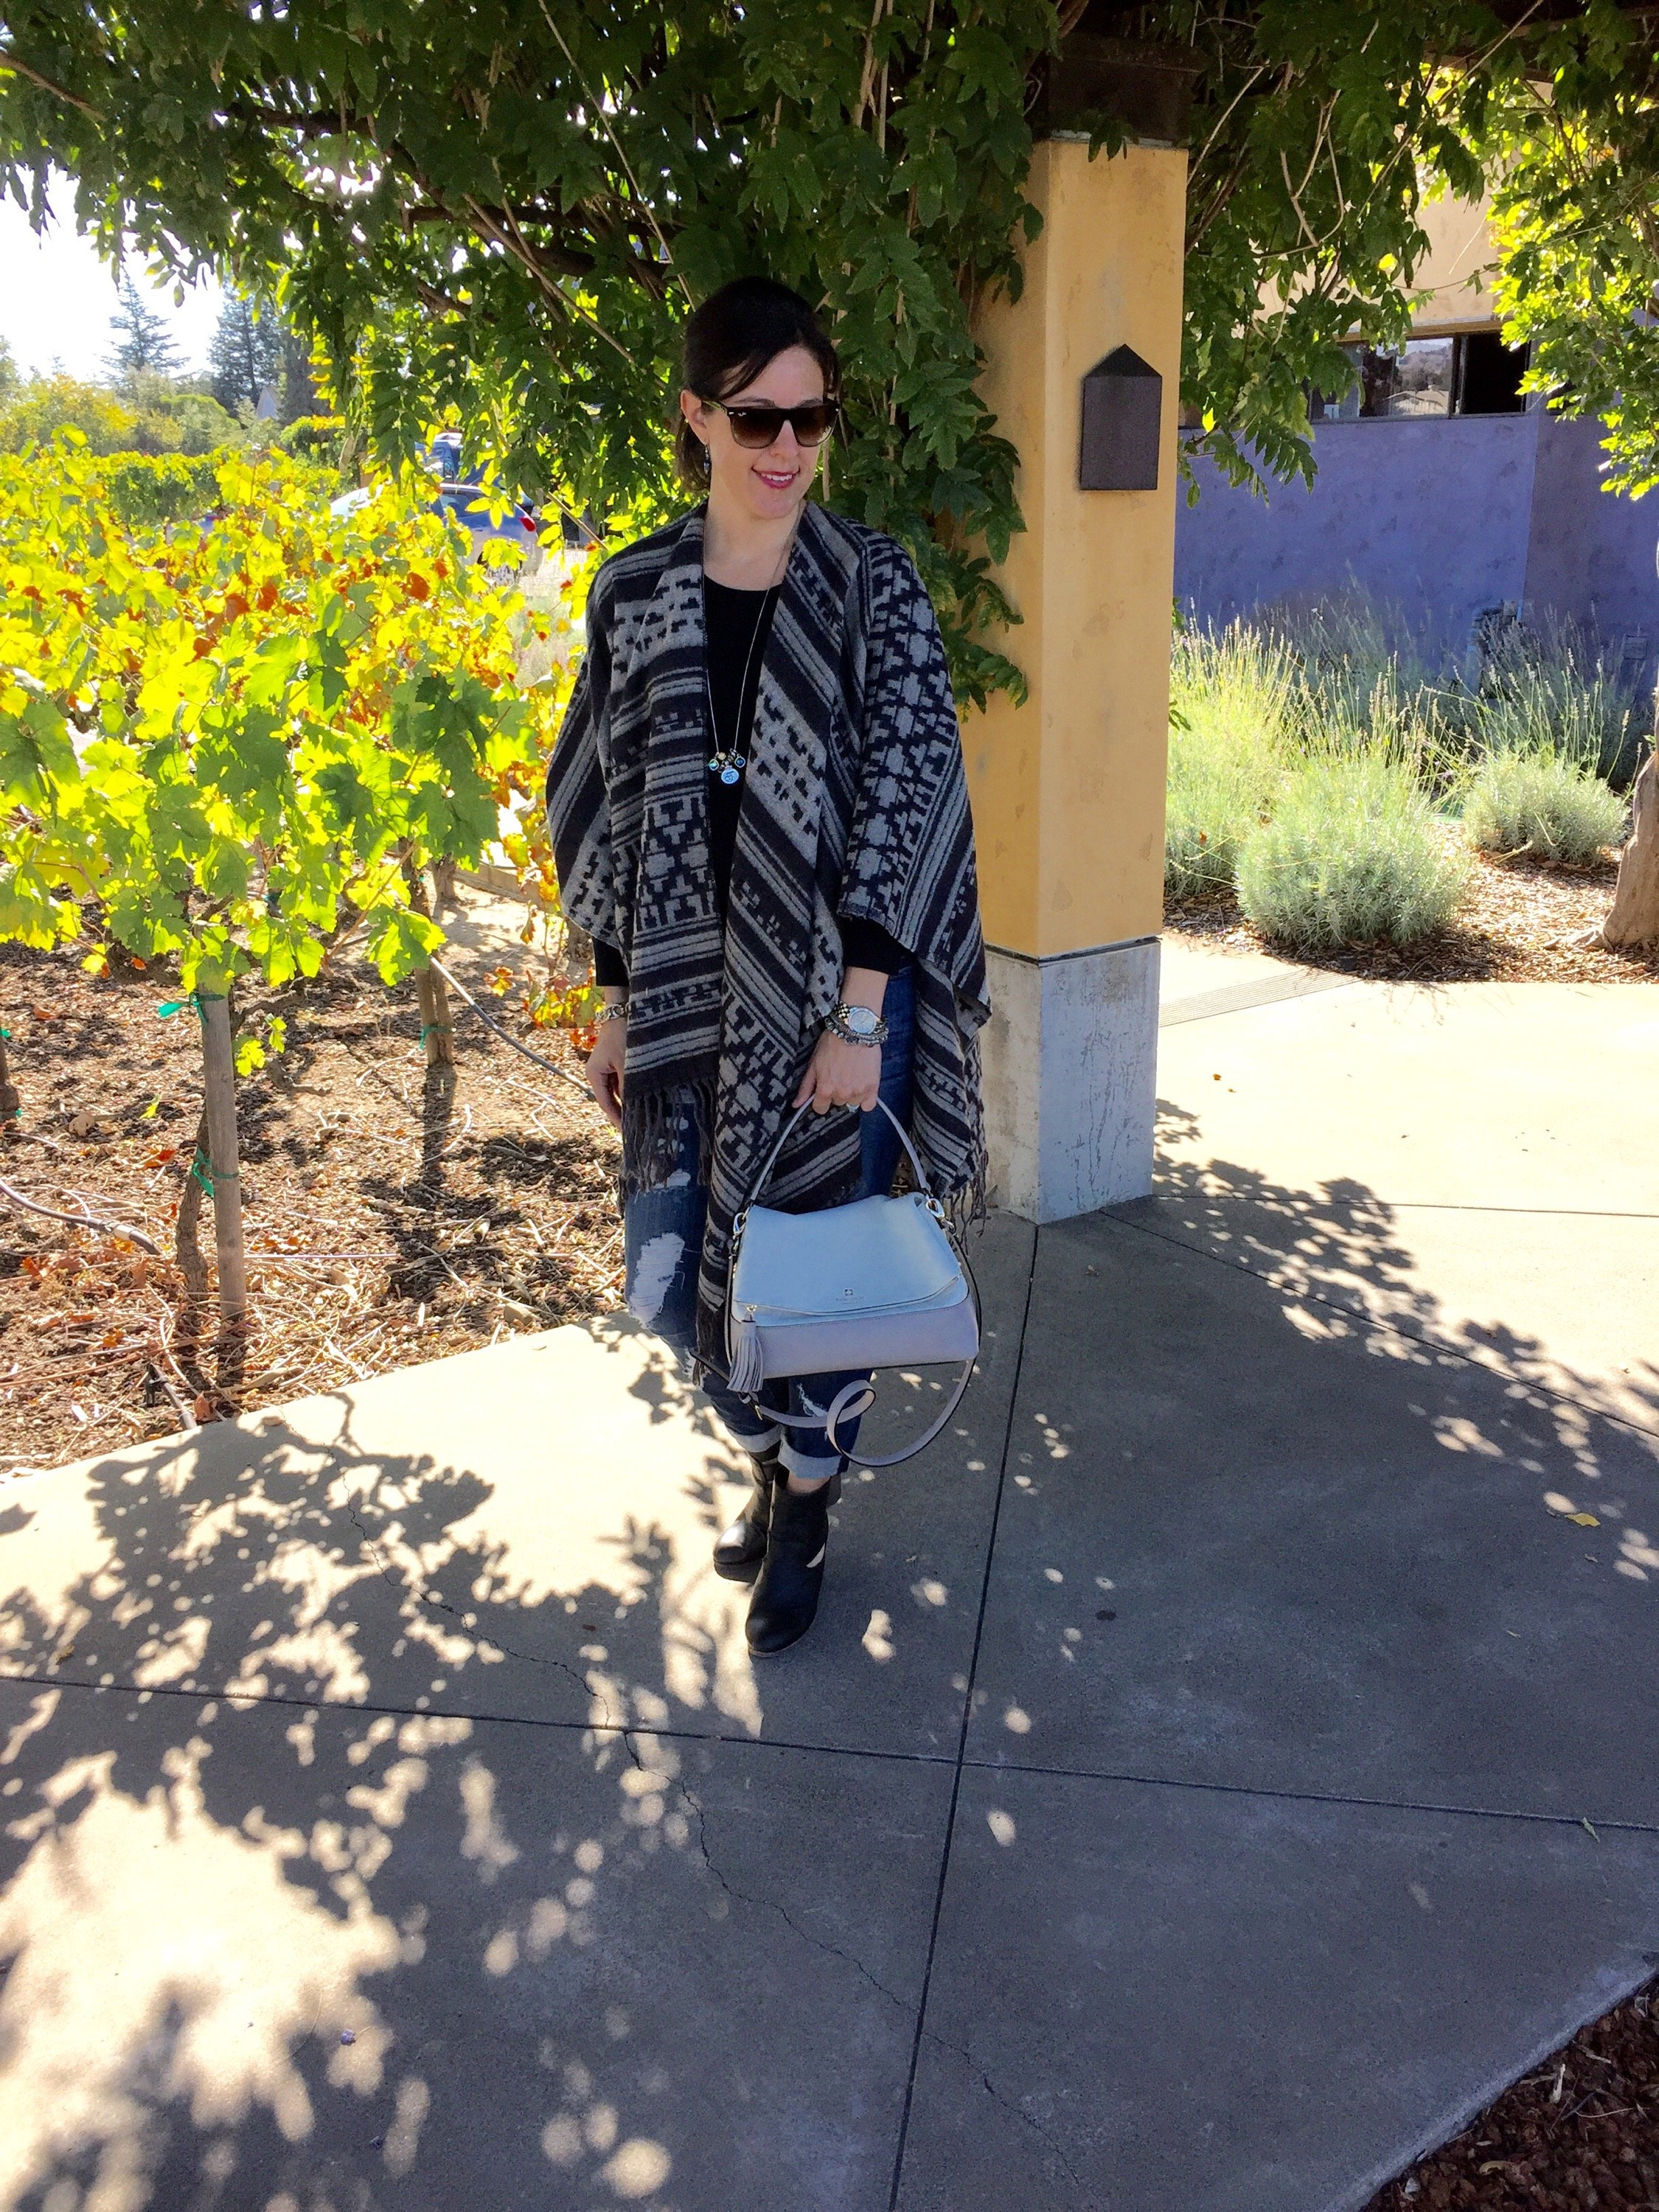 Poncho + Skinnies in Wine Country